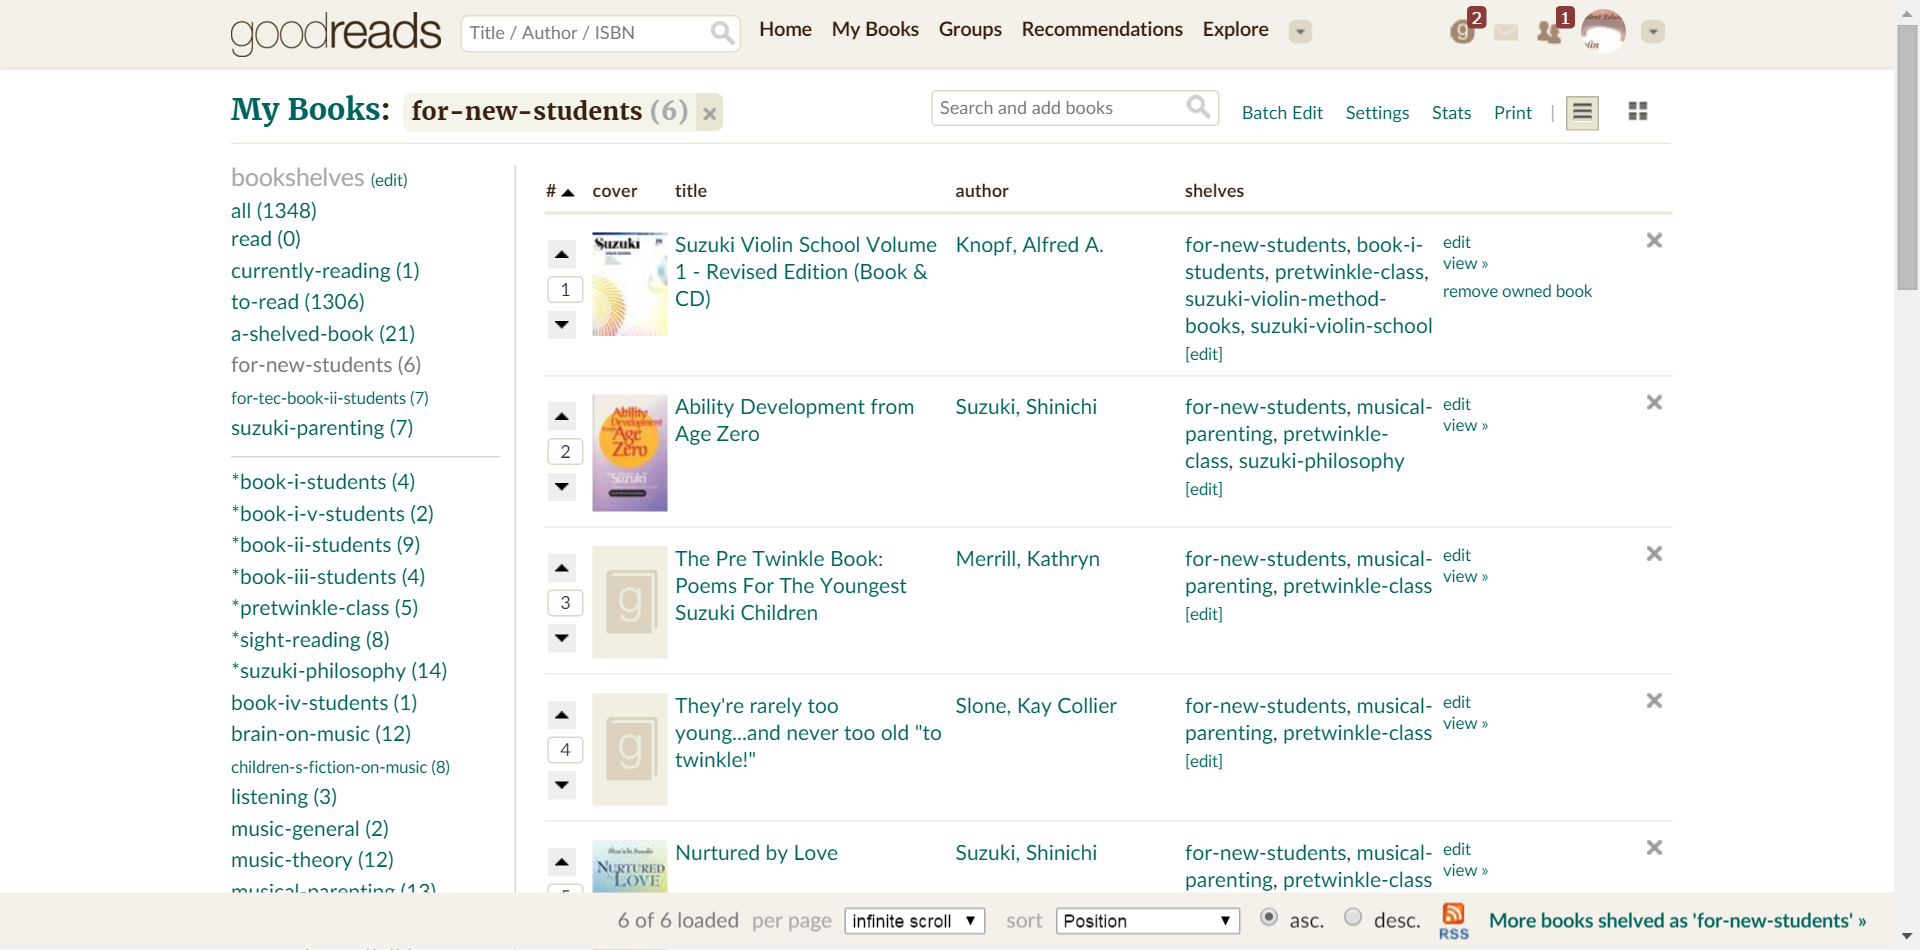 Goodreads | Suzuki Violin's bookshelf: for-new-students (showing 1-6 of 6)  (sorted by: position) Additional reading for parents who would like to  learn more ...